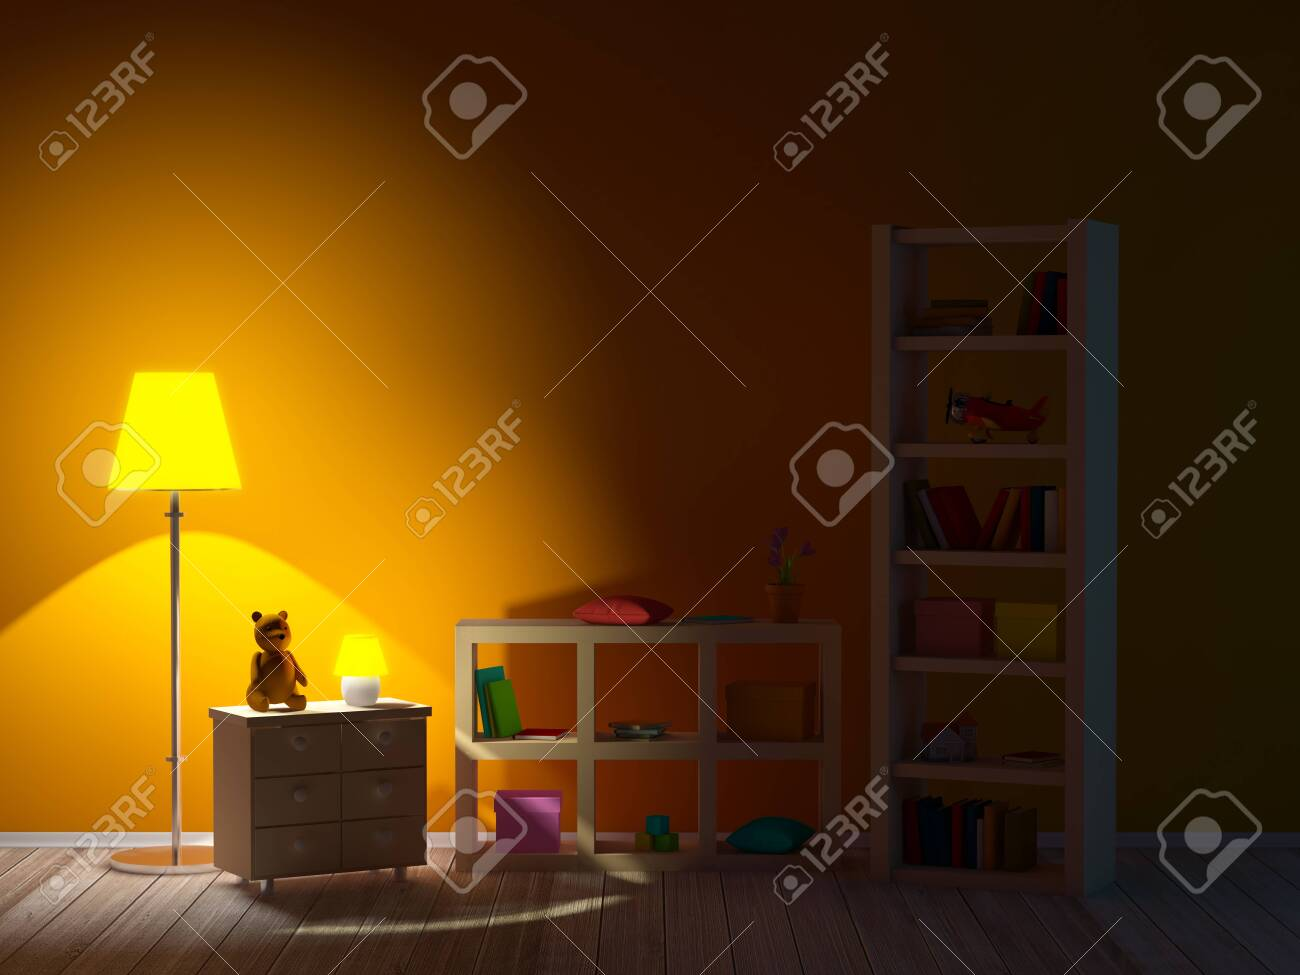 Kids Room With Bookcases Night